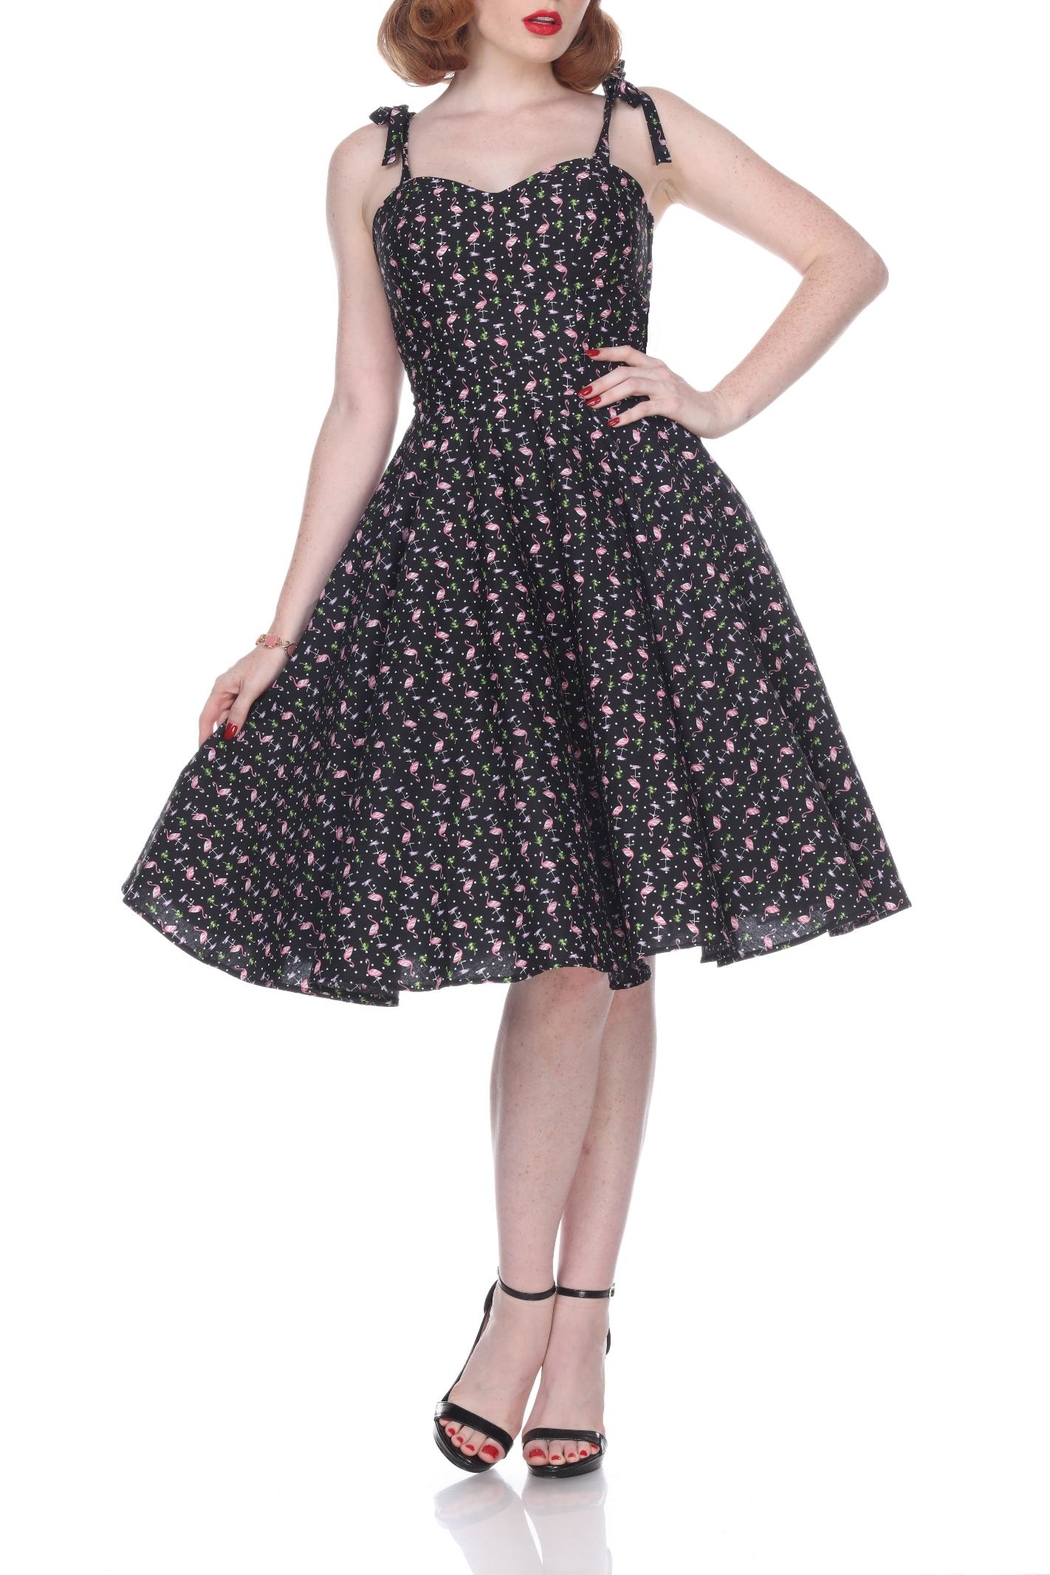 Bettie Page Clothing Flamingo Swing Dress - Main Image